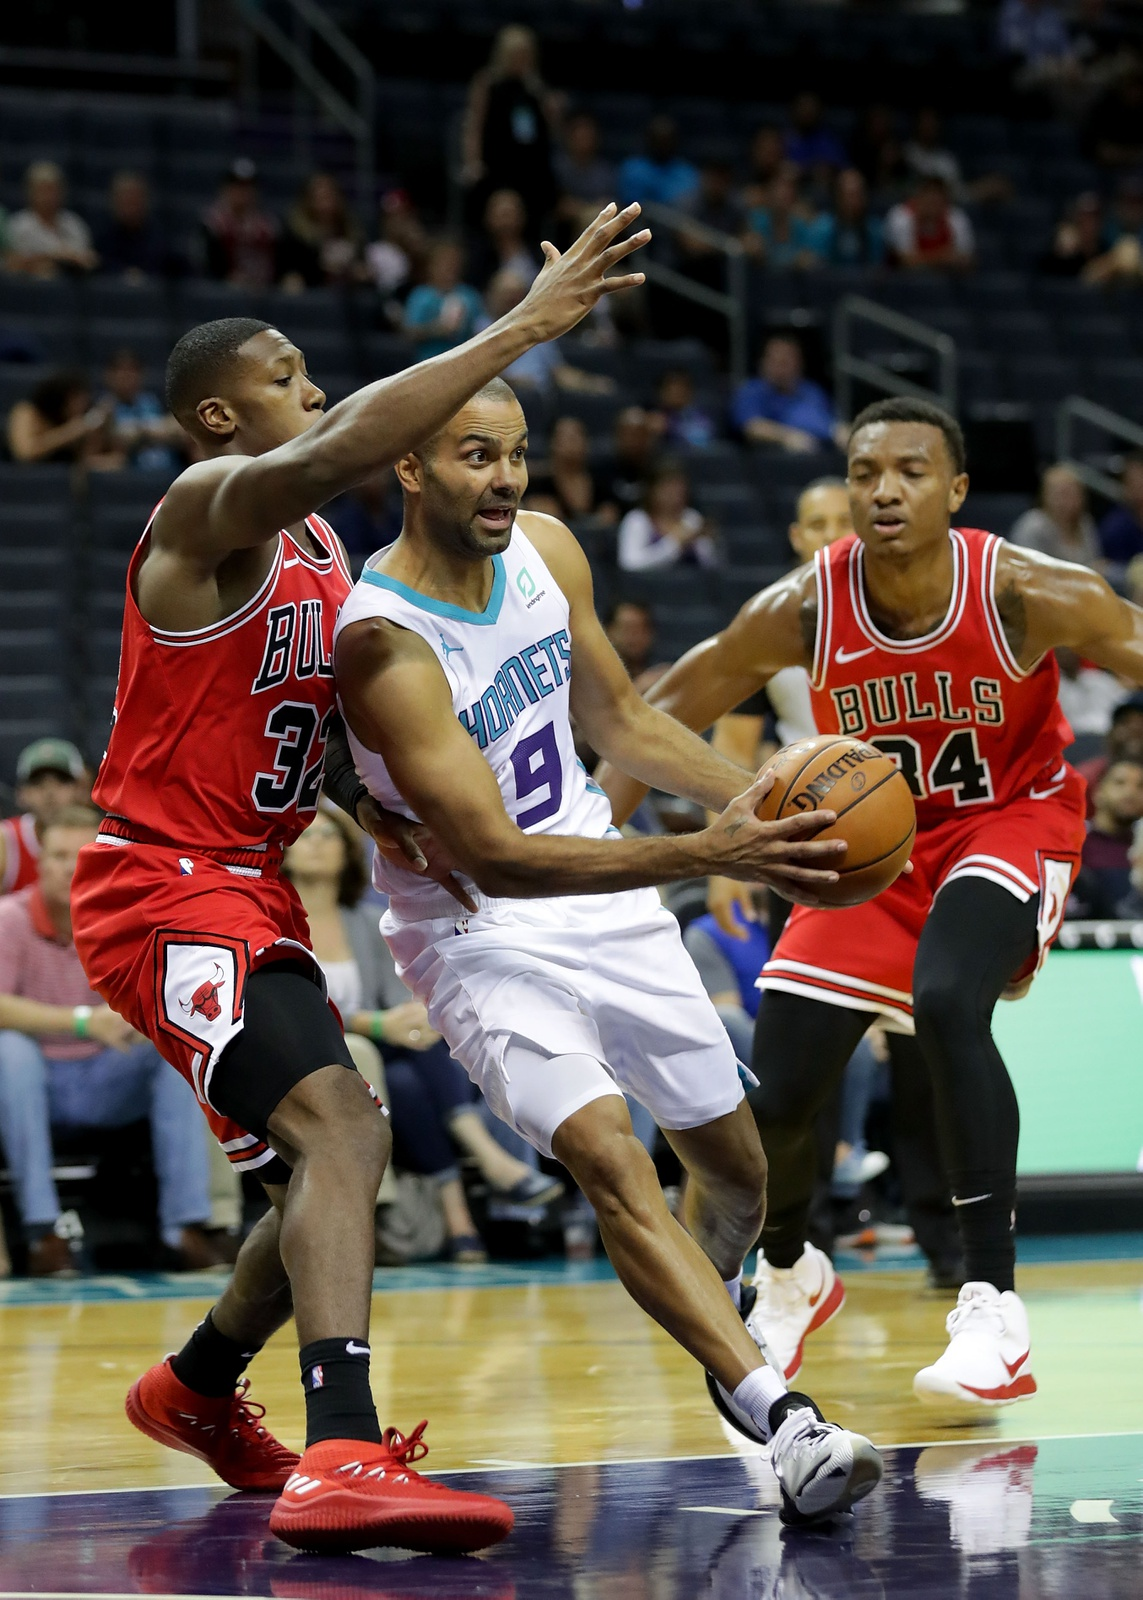 Tony Parker #9 of the Charlotte Hornets drives to the basket against Kris Dunn #32 of the Chicago Bulls during their game at Spectrum Center on October 8, 2018 in Charlotte, North Carolina.